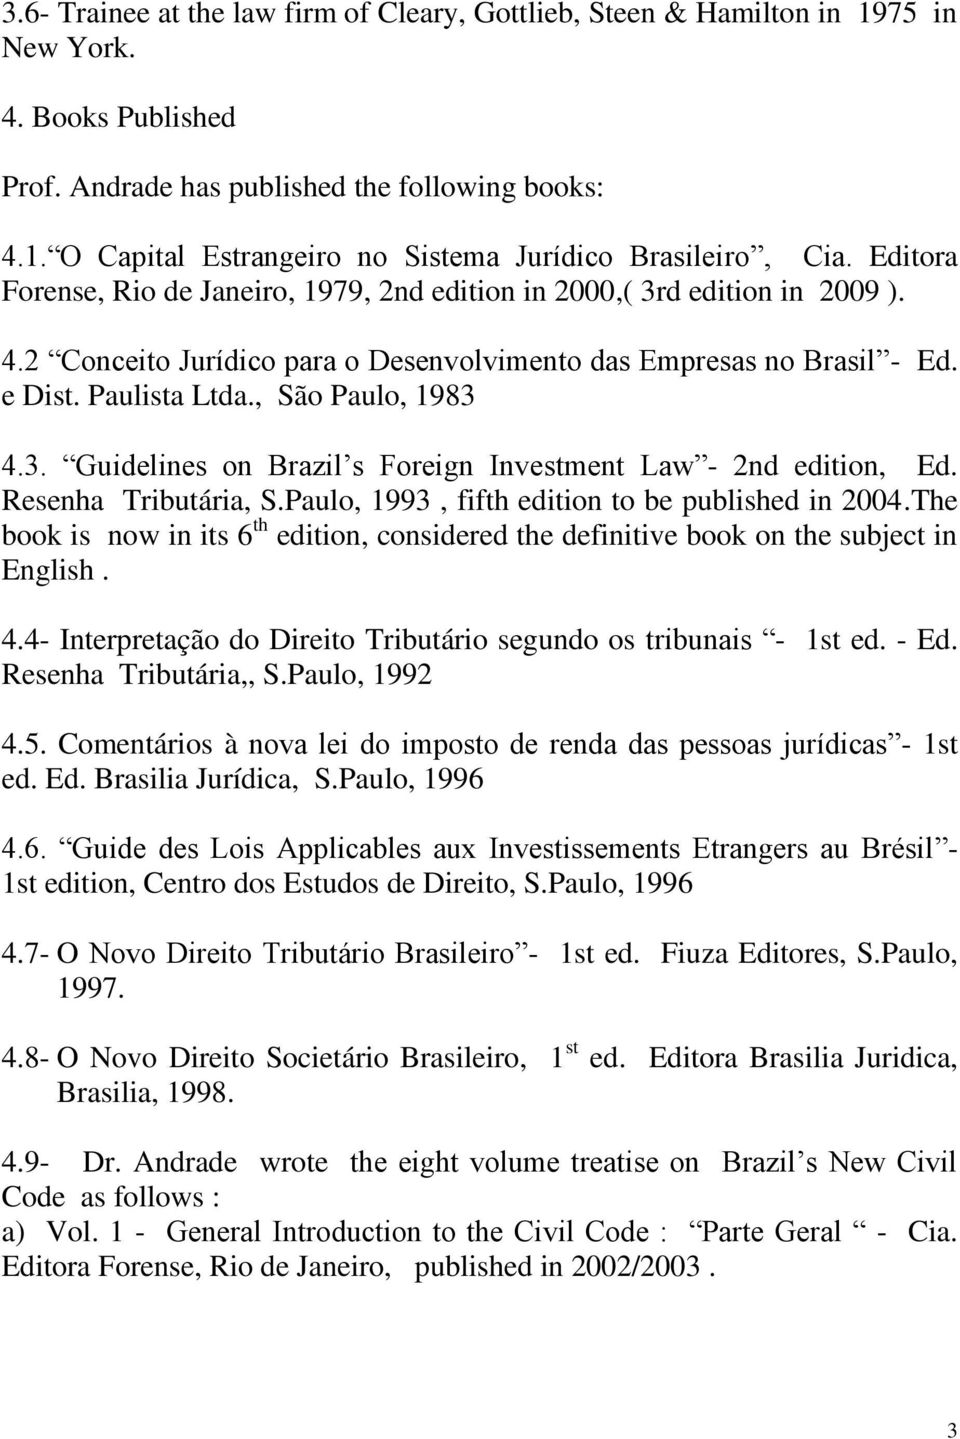 3. Guidelines on Brazil s Foreign Investment Law - 2nd edition, Ed. Resenha Tributária, S.Paulo, 1993, fifth edition to be published in 2004.